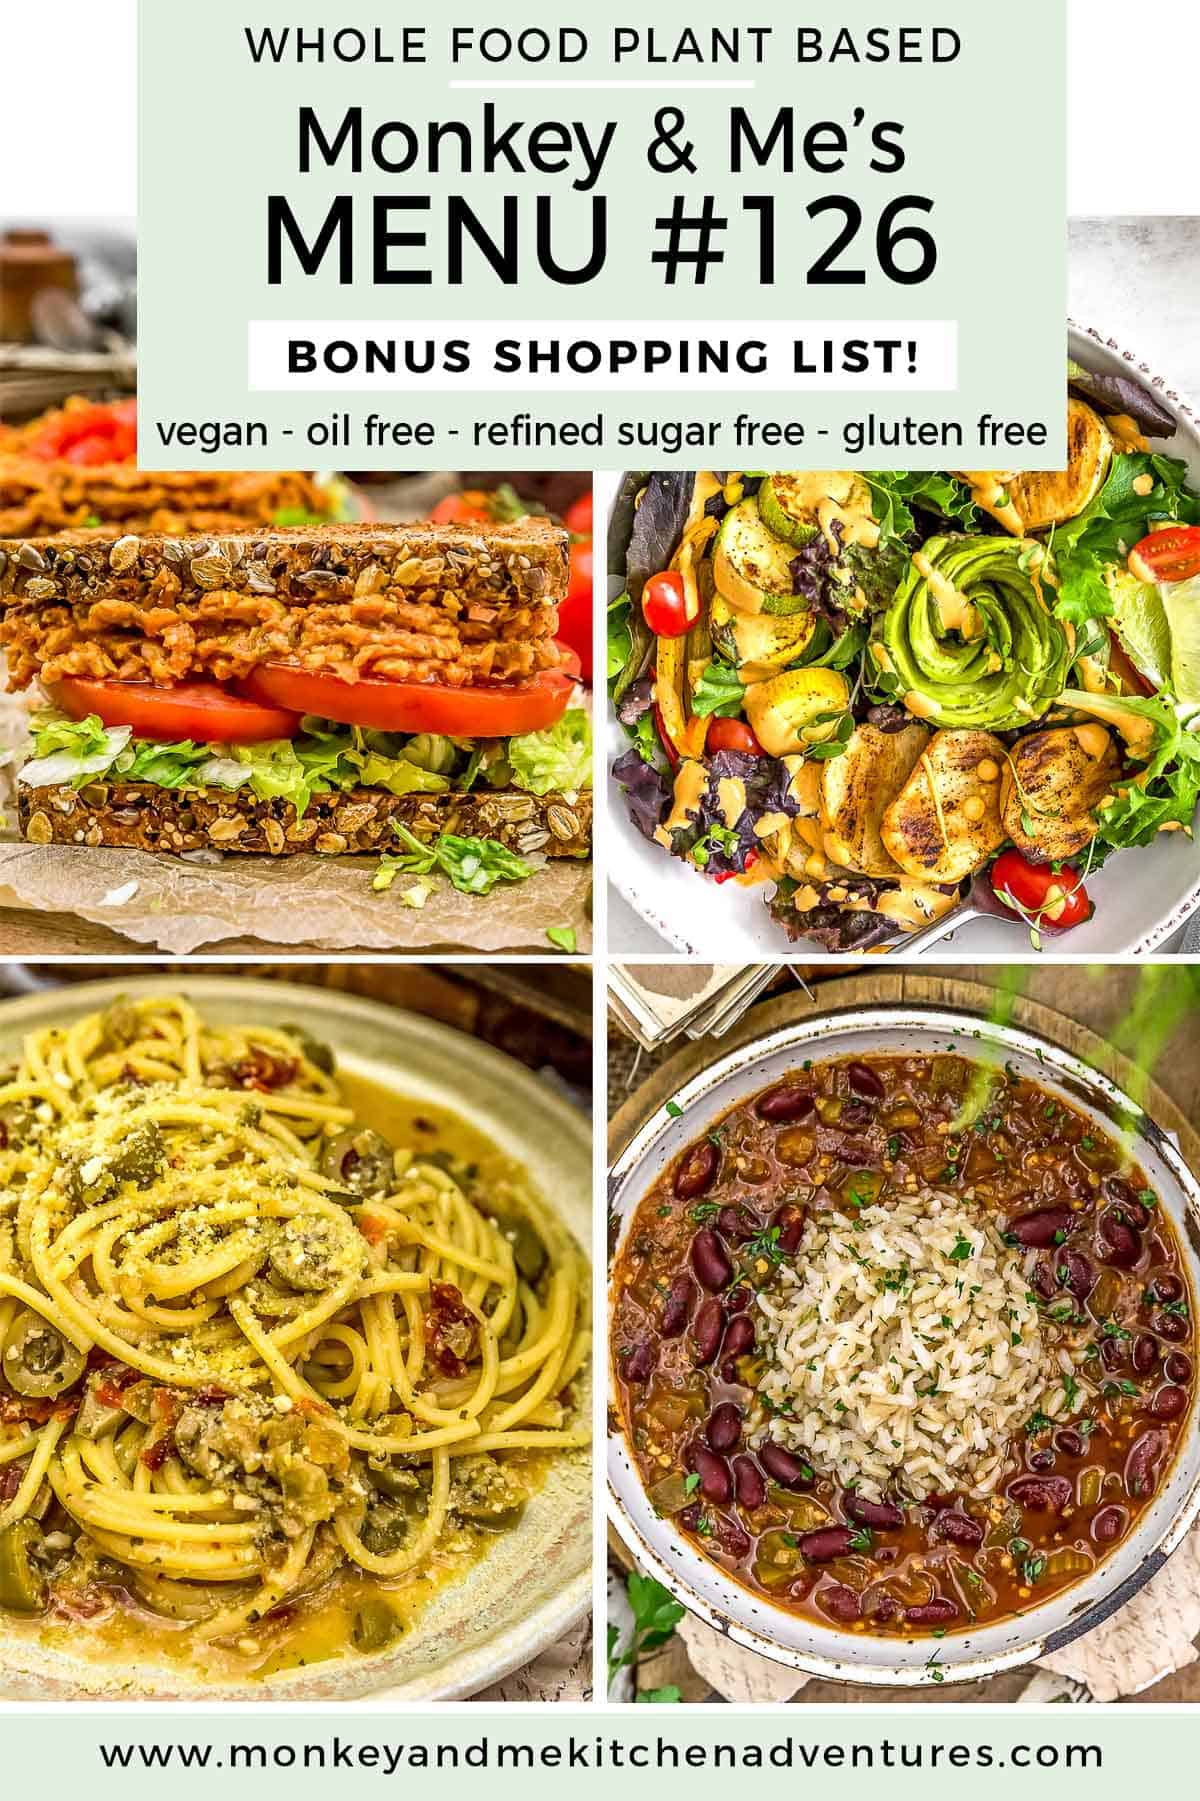 Monkey and Me's Menu 126 featuring 4 recipes